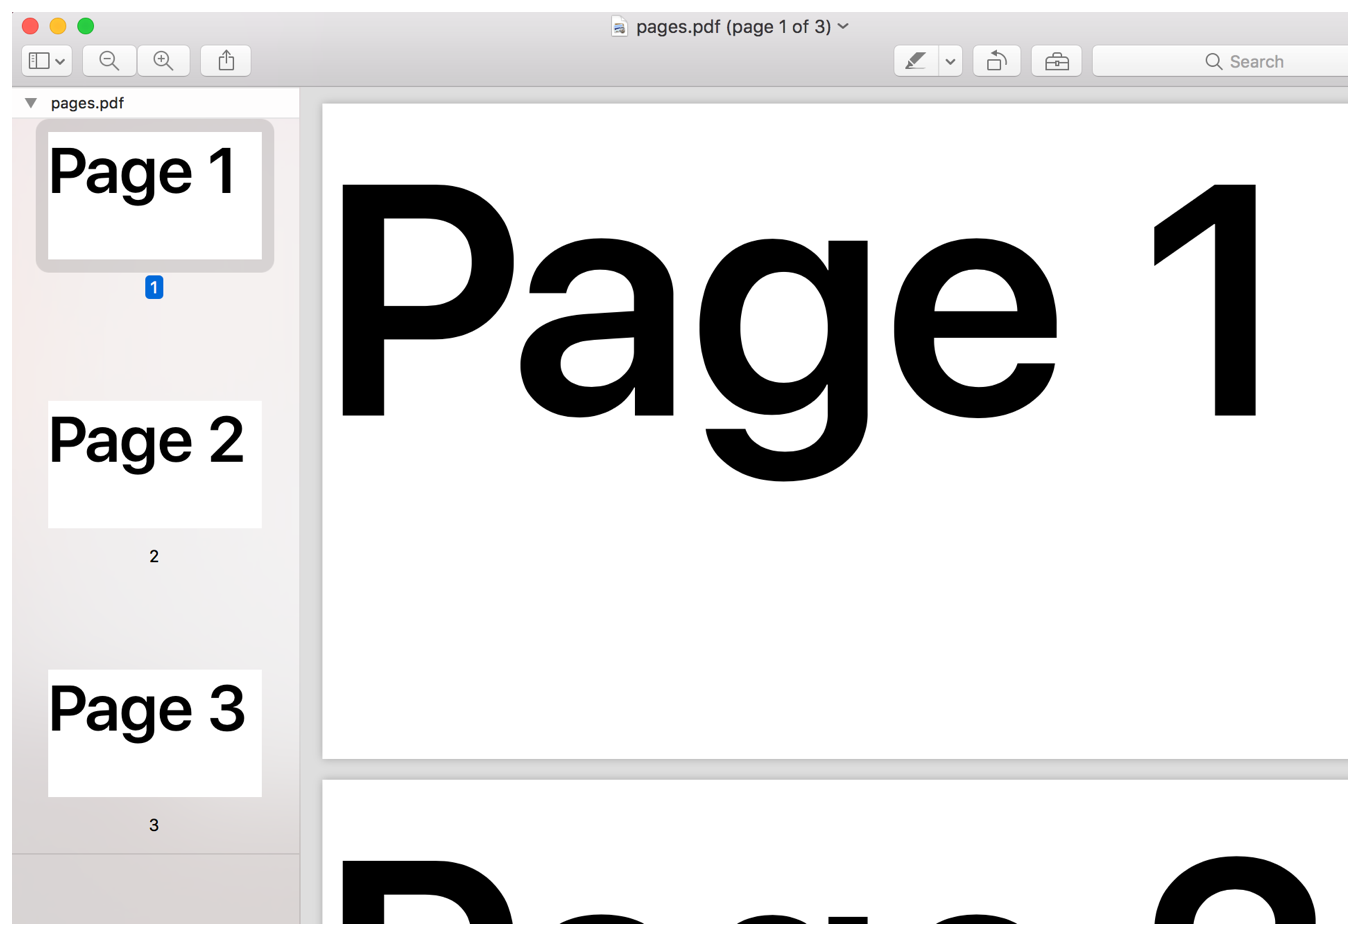 Screenshot from Preview showing a 3-page PDF. Each page contains large black lettering which details the current page number.